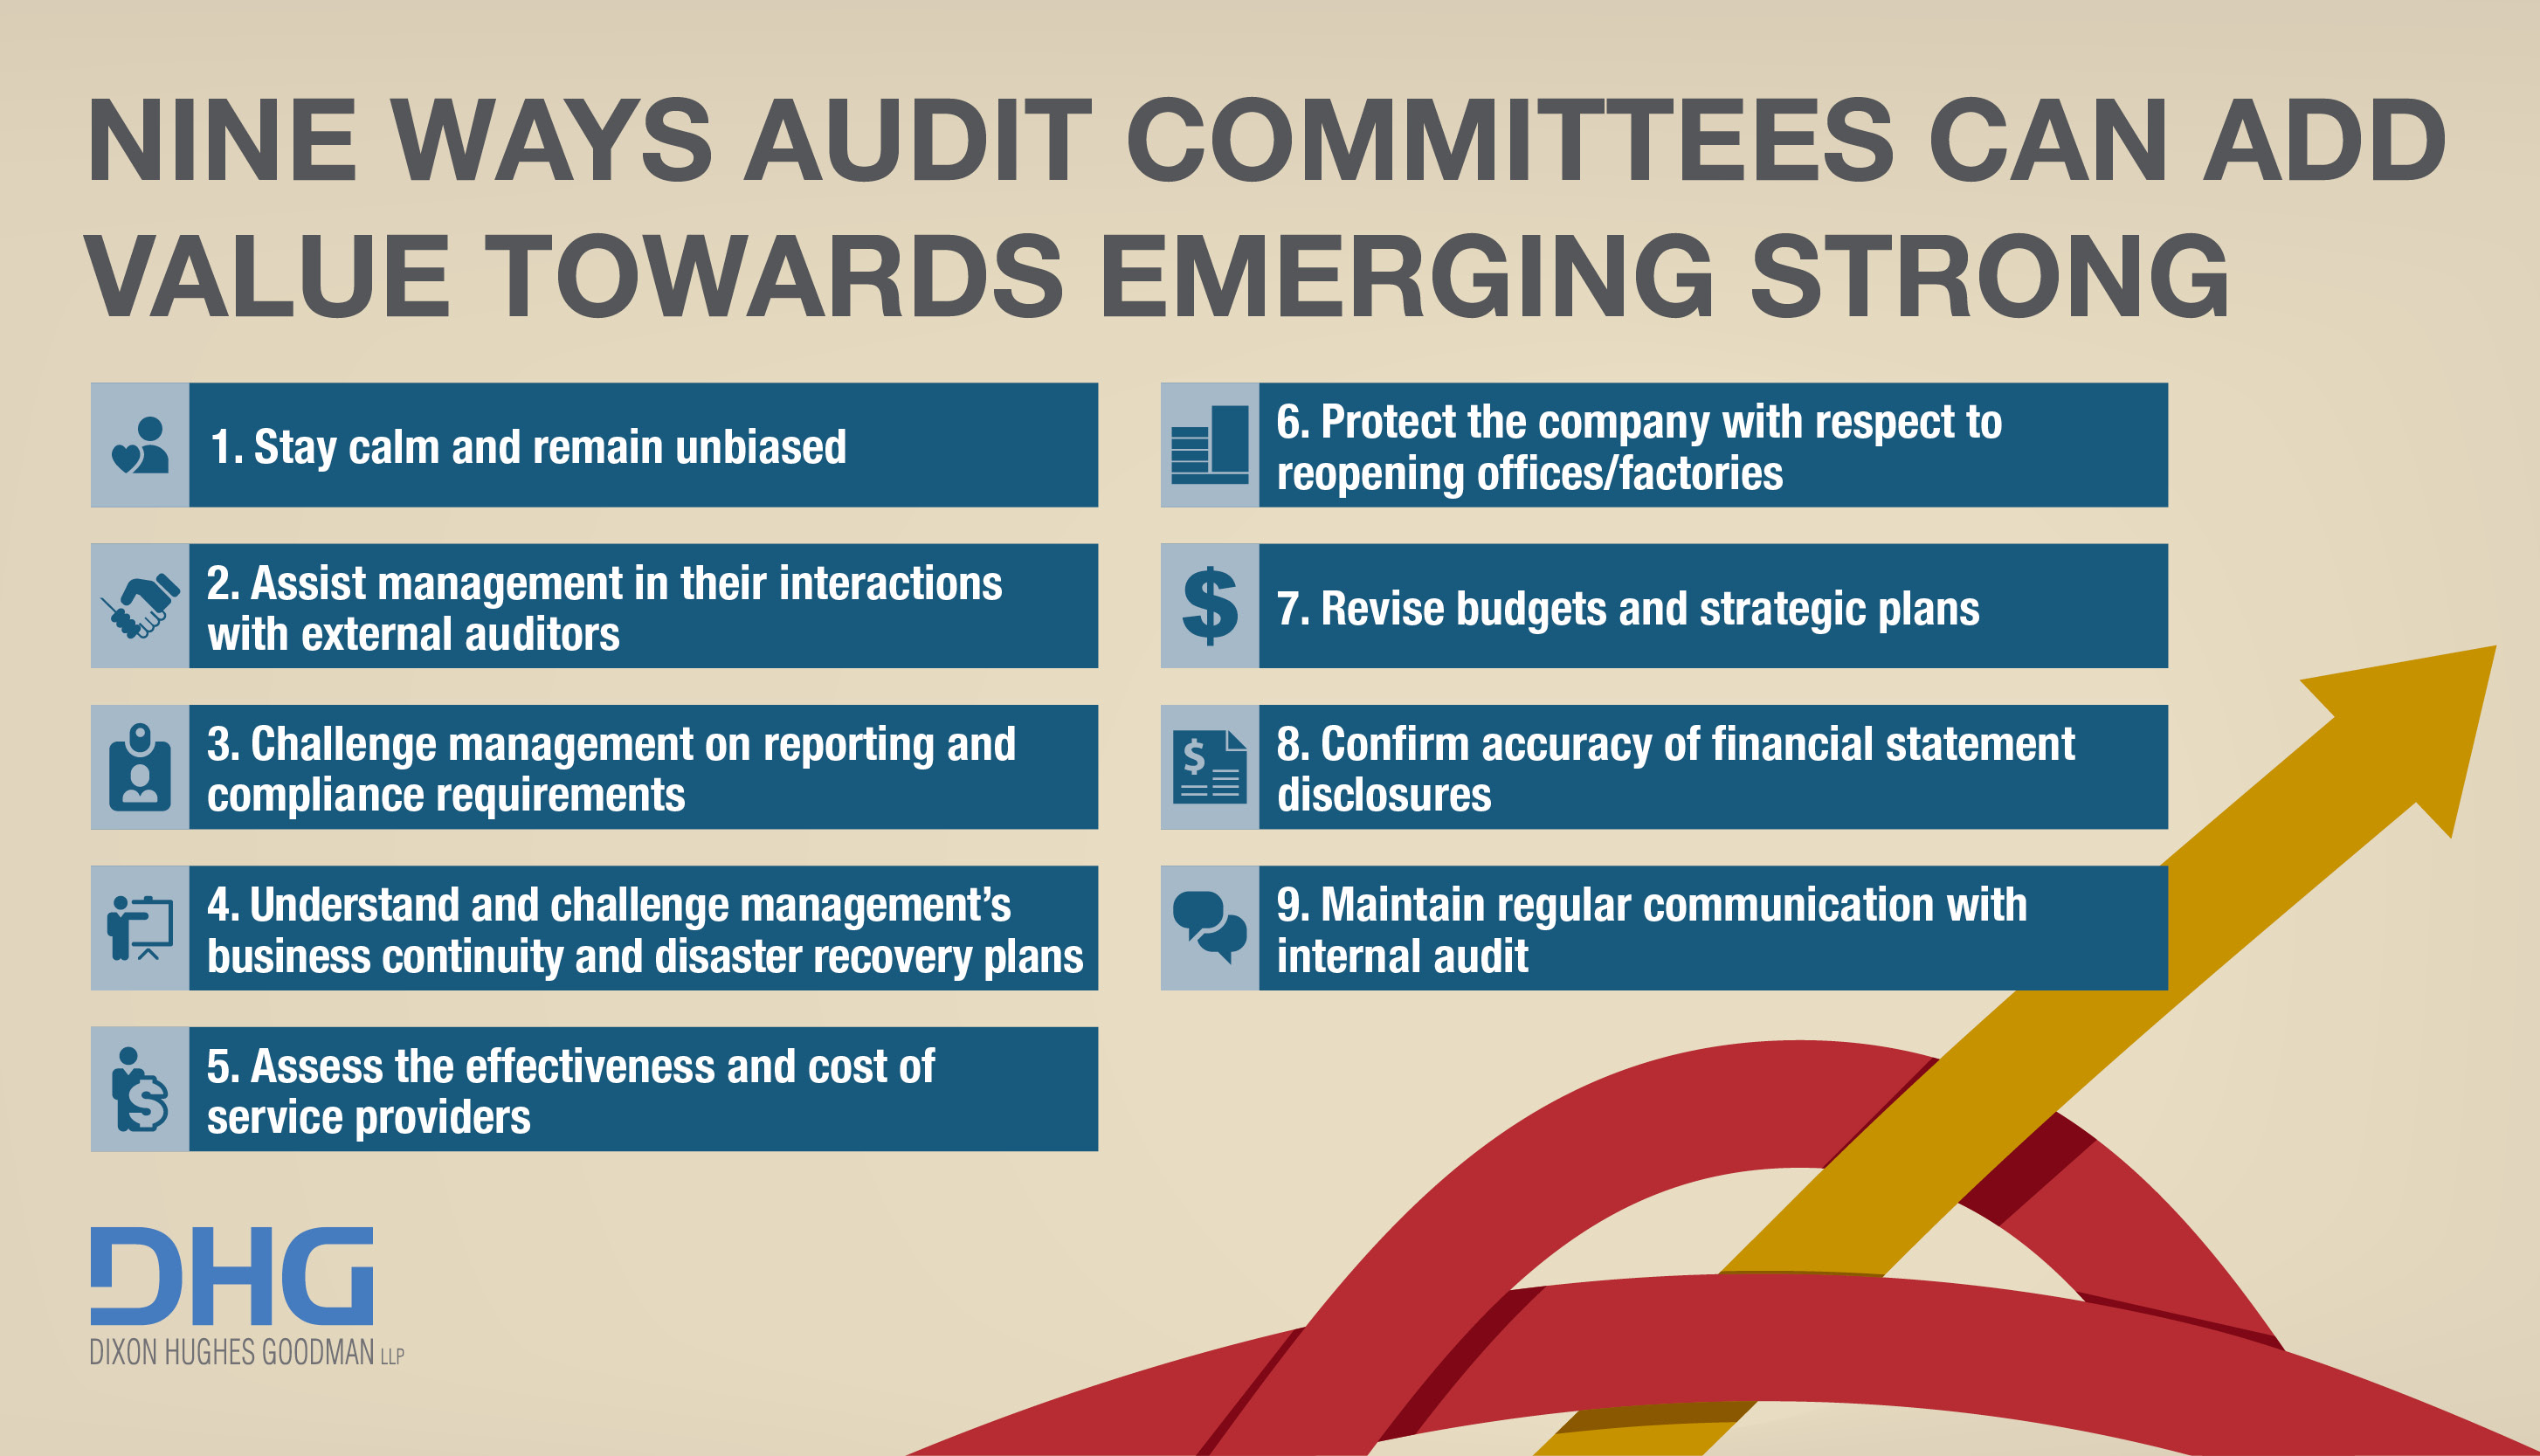 9-Ways-Audit-Committees-Can-Add-Value-article.jpg